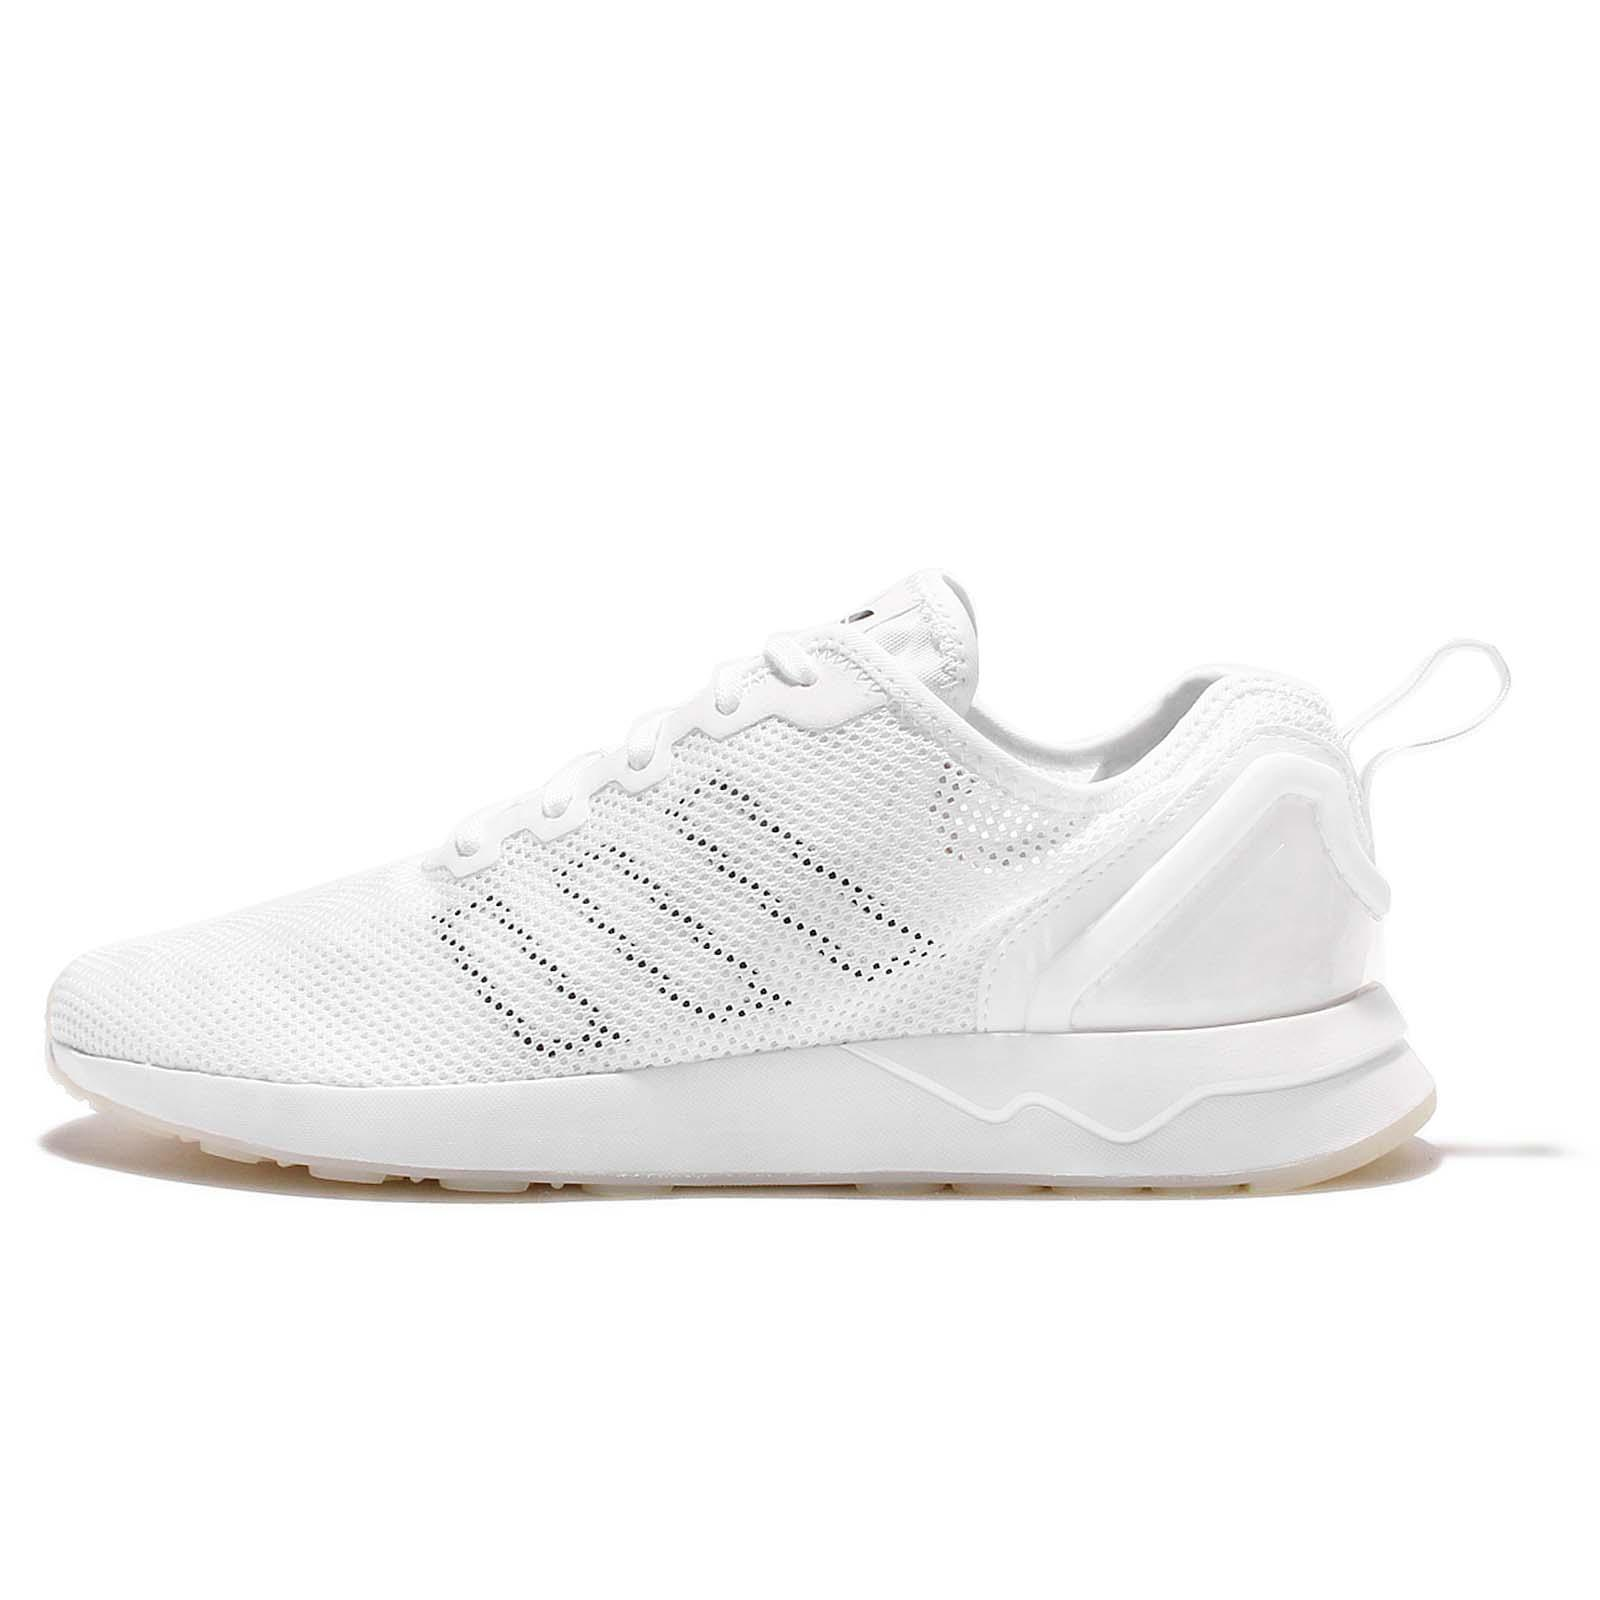 finest selection 6a414 3fcff ... adidas Originals ZX Flux ADV SL White Mens Running Shoes Sneakers  S76556 ...